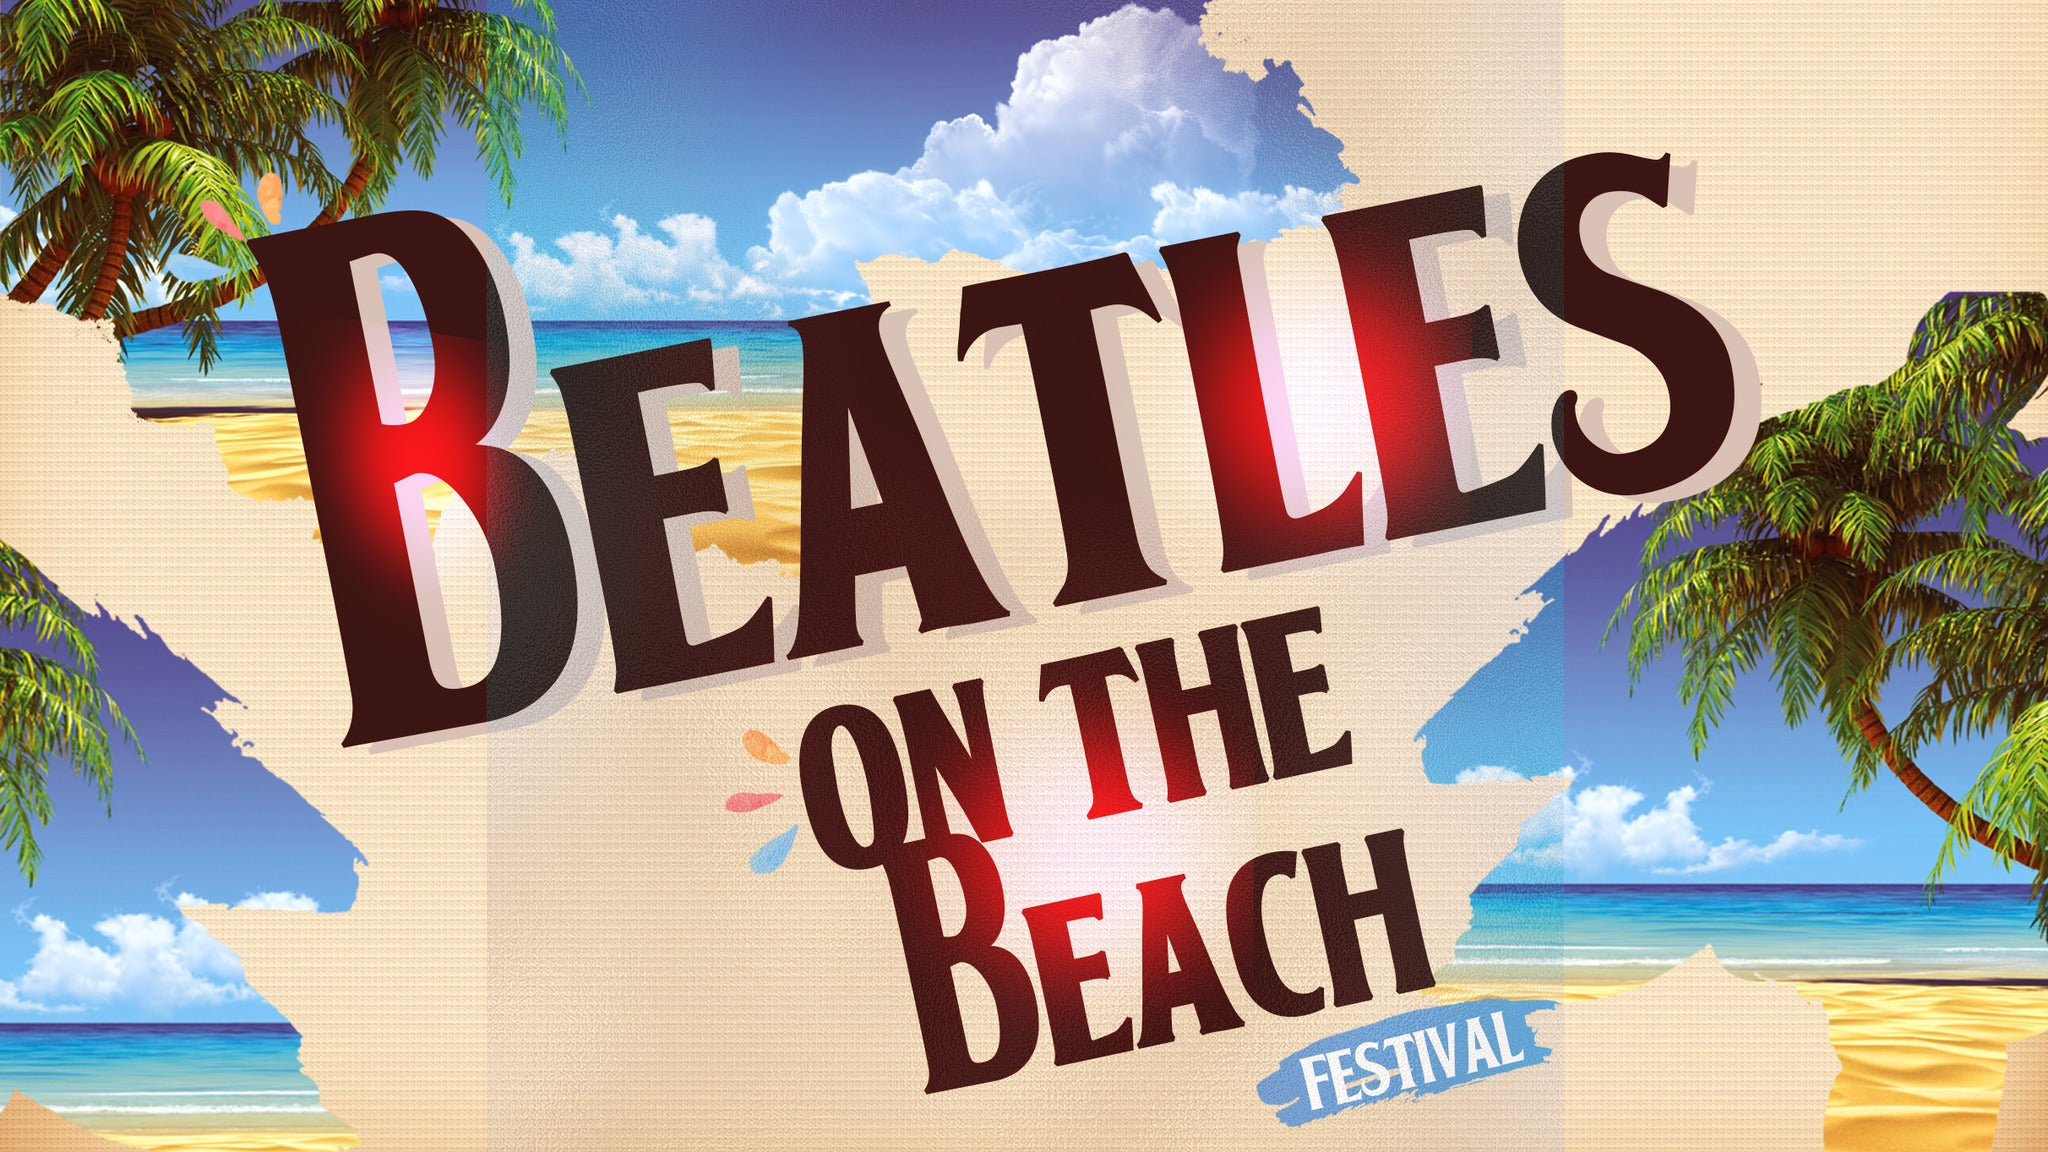 The International Beatles on the Beach Festival - 2 Day Pass